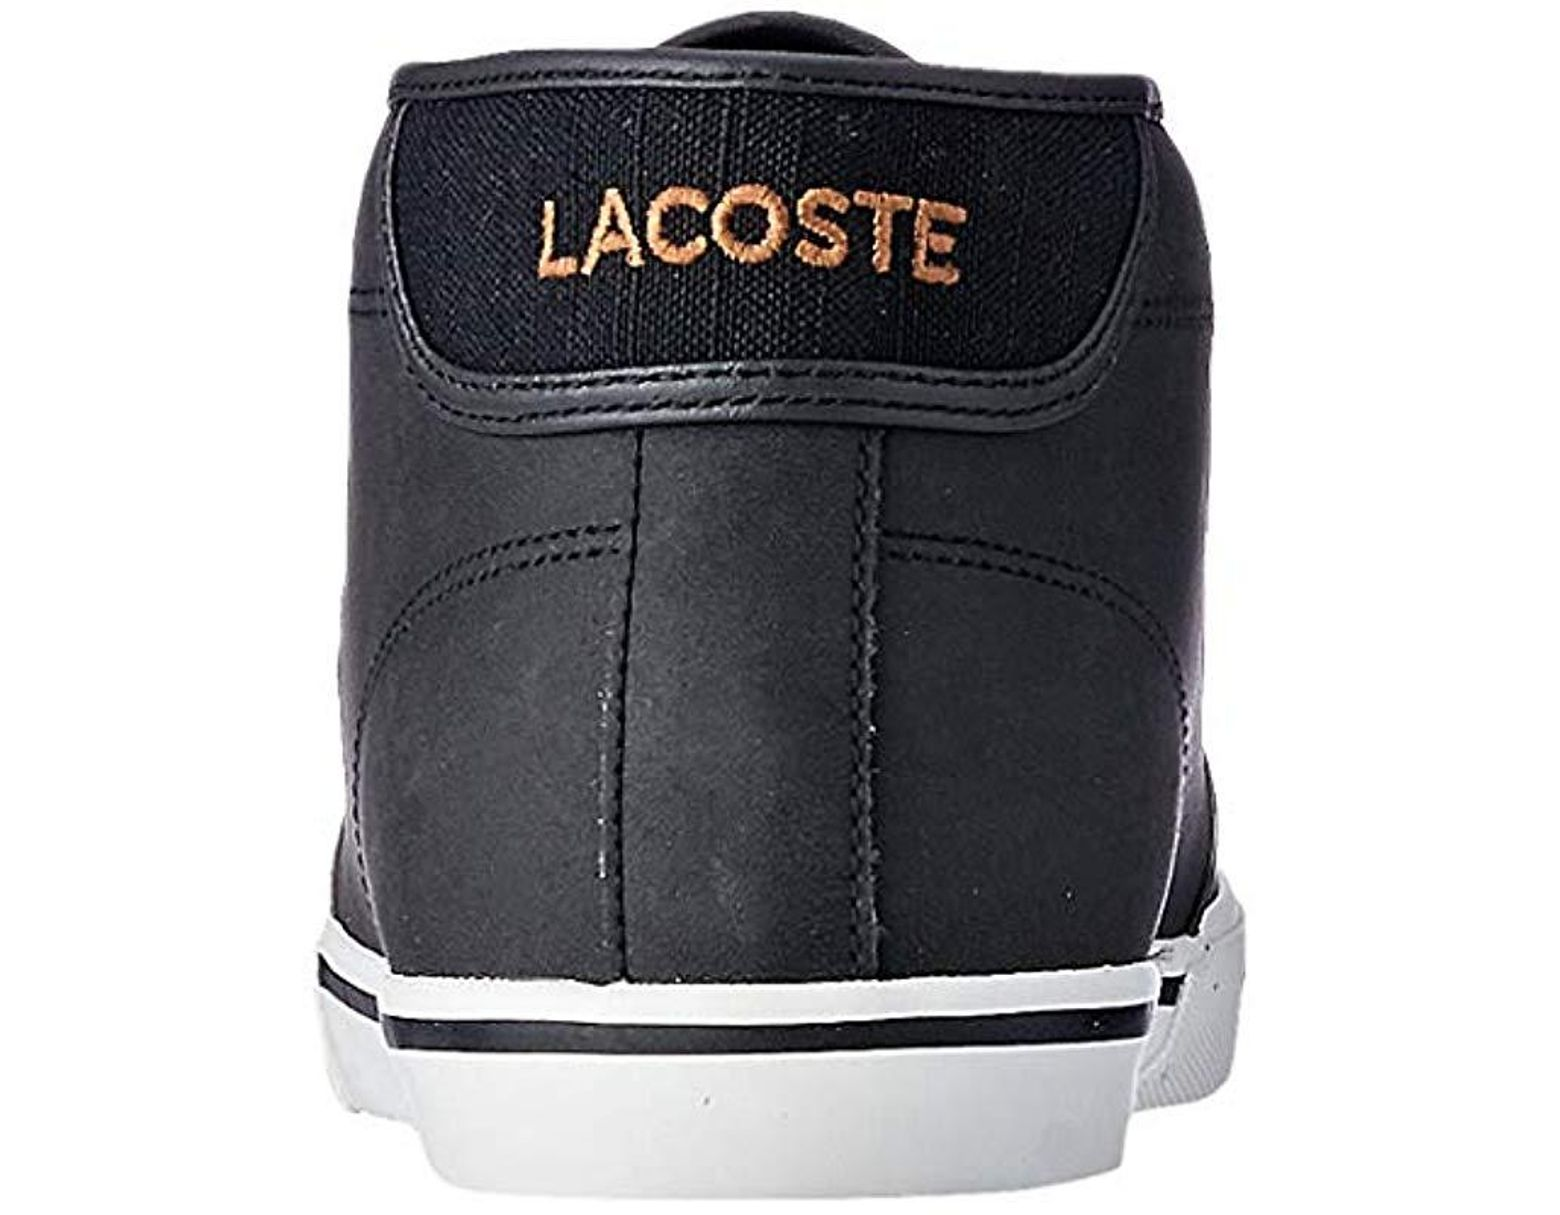 707d37030b70b Lacoste Ampthill 119 1 Cma Hi-top Trainers in Black for Men - Lyst